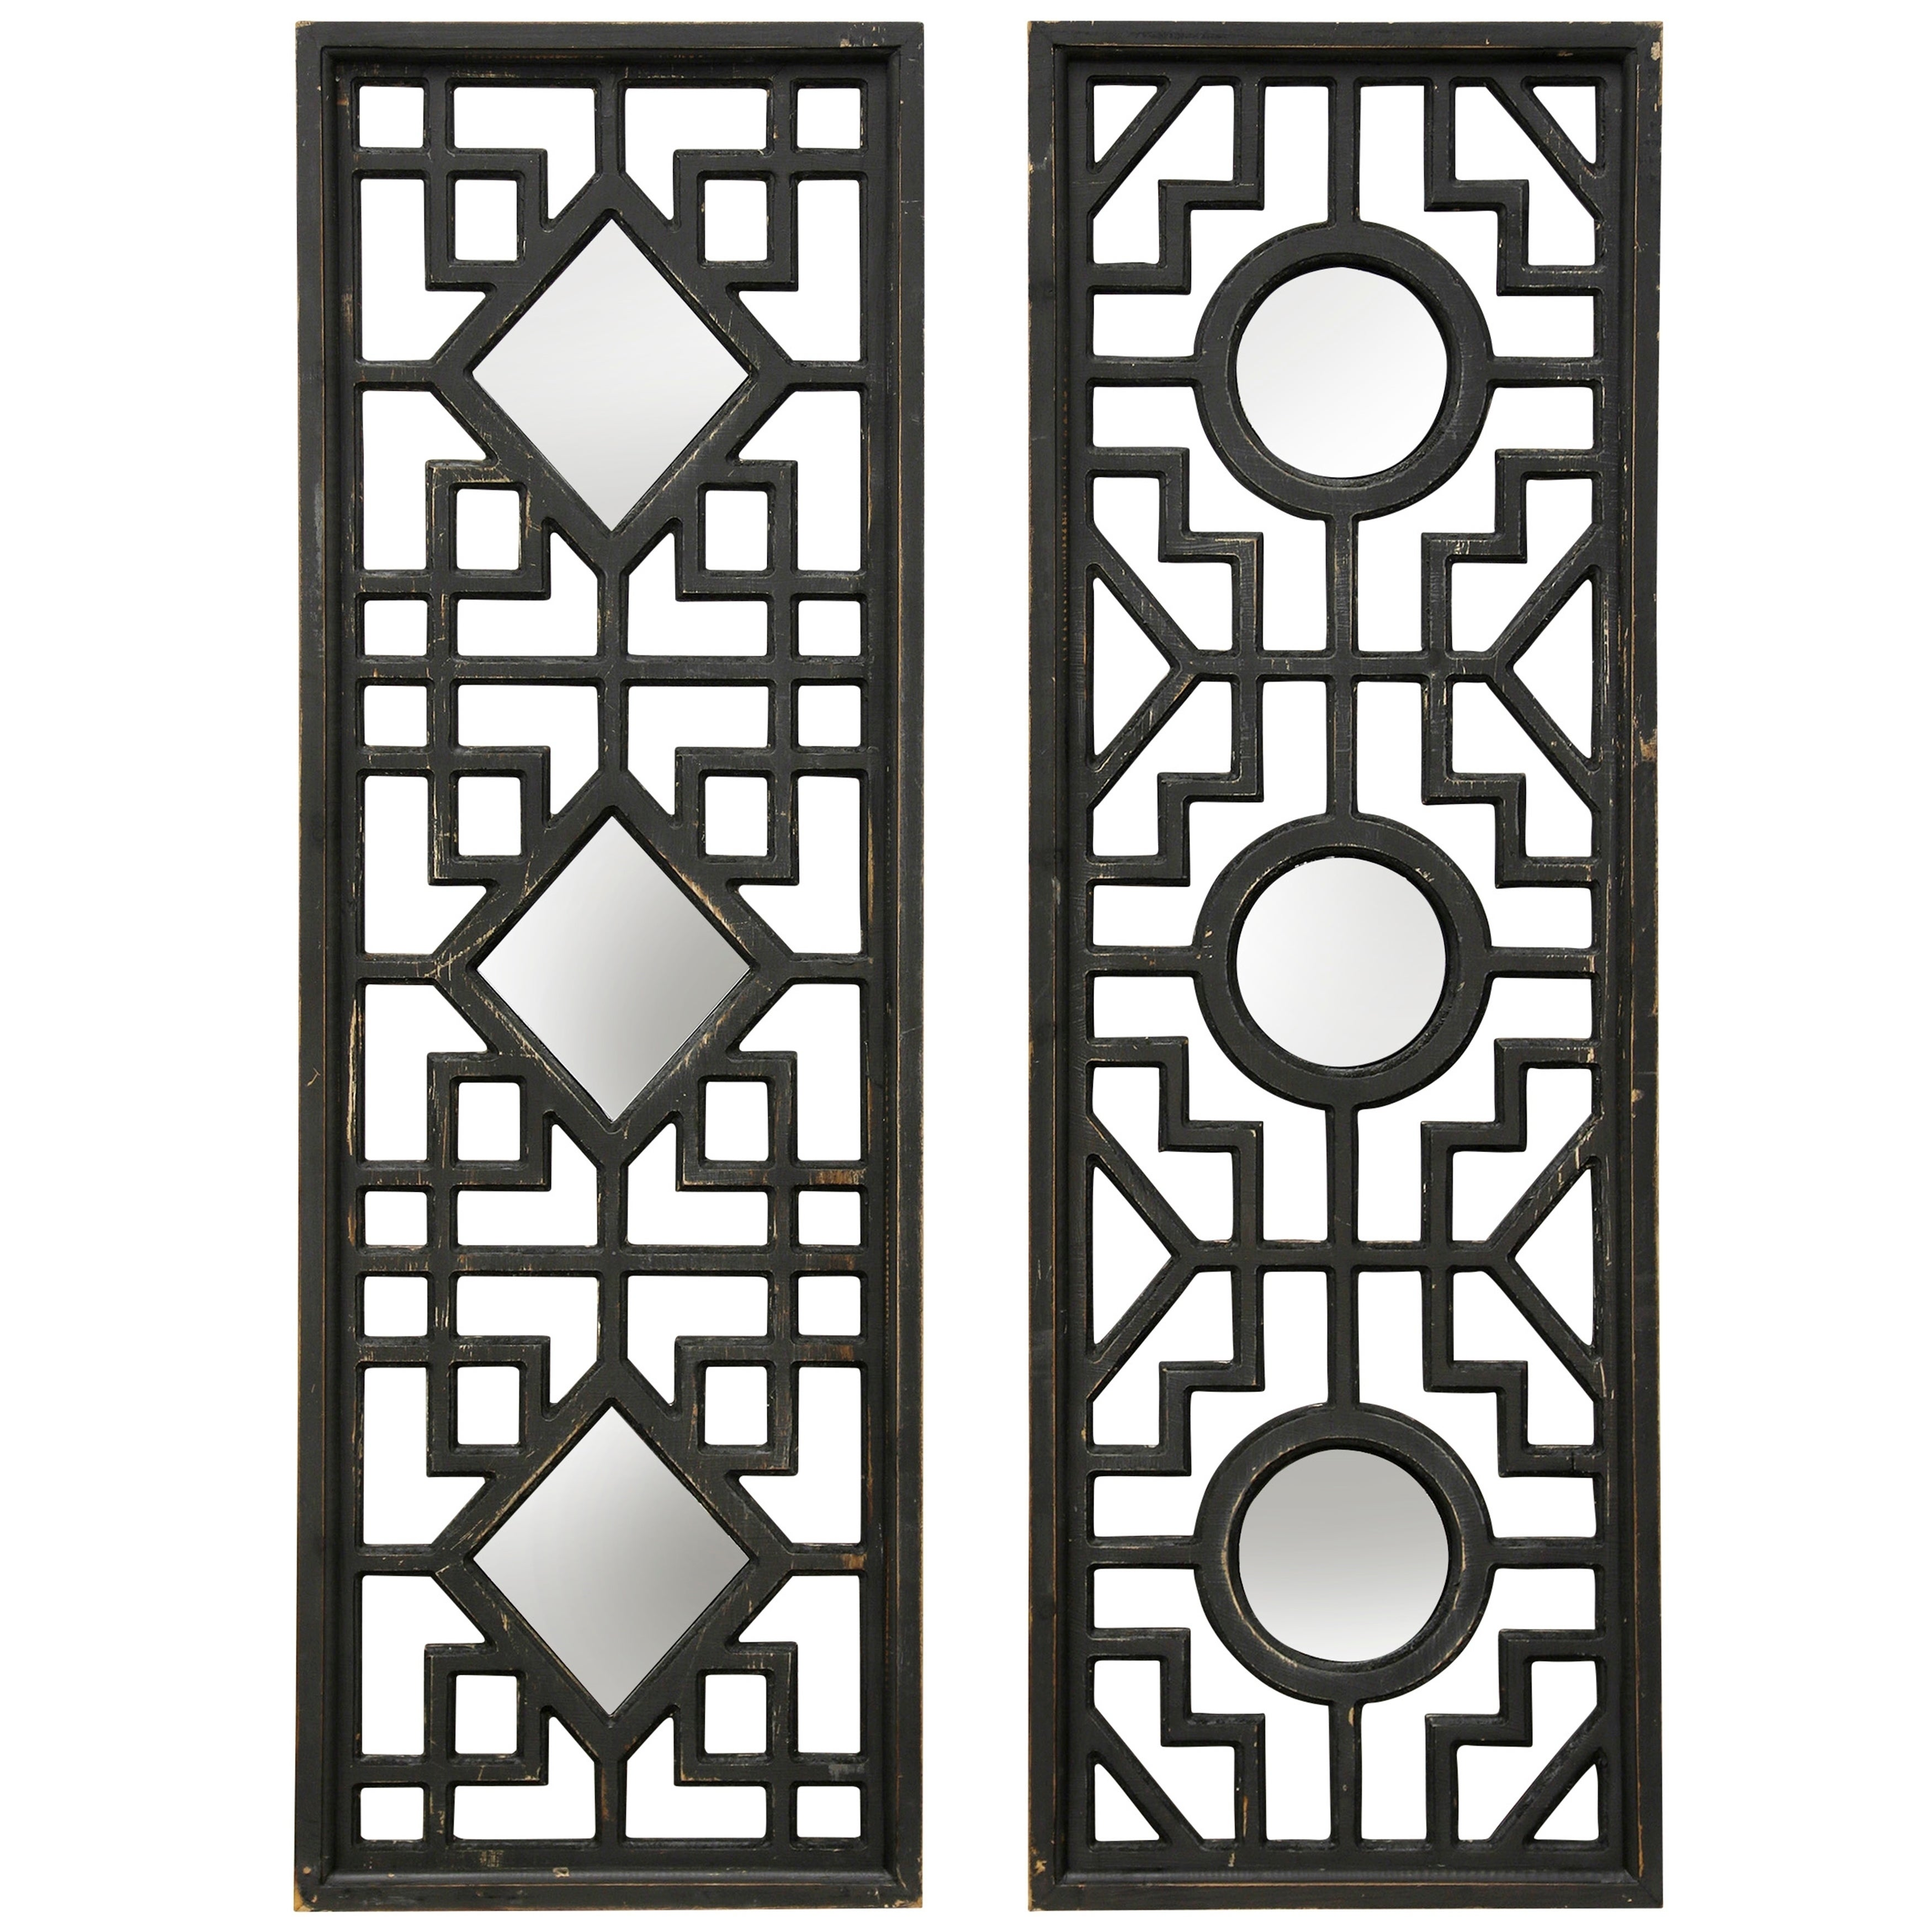 Collection of Diamond and Circular Wall Mirrors Framed in Geometric Fretwork (Set of 2)